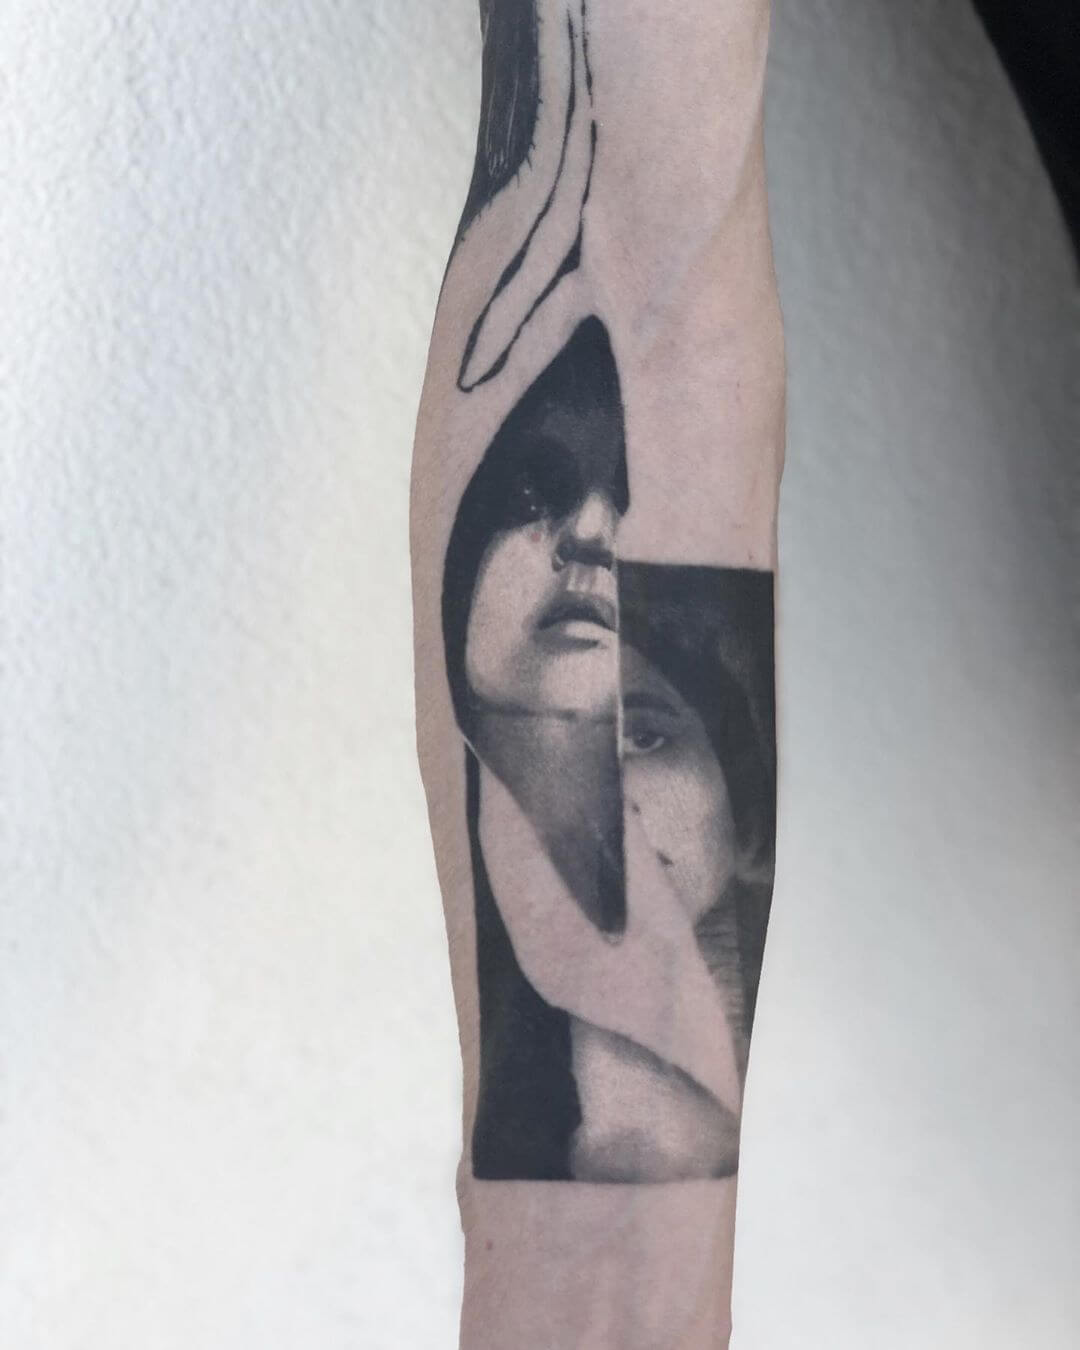 Blackwork distorted portrait tattoo by La Malafede